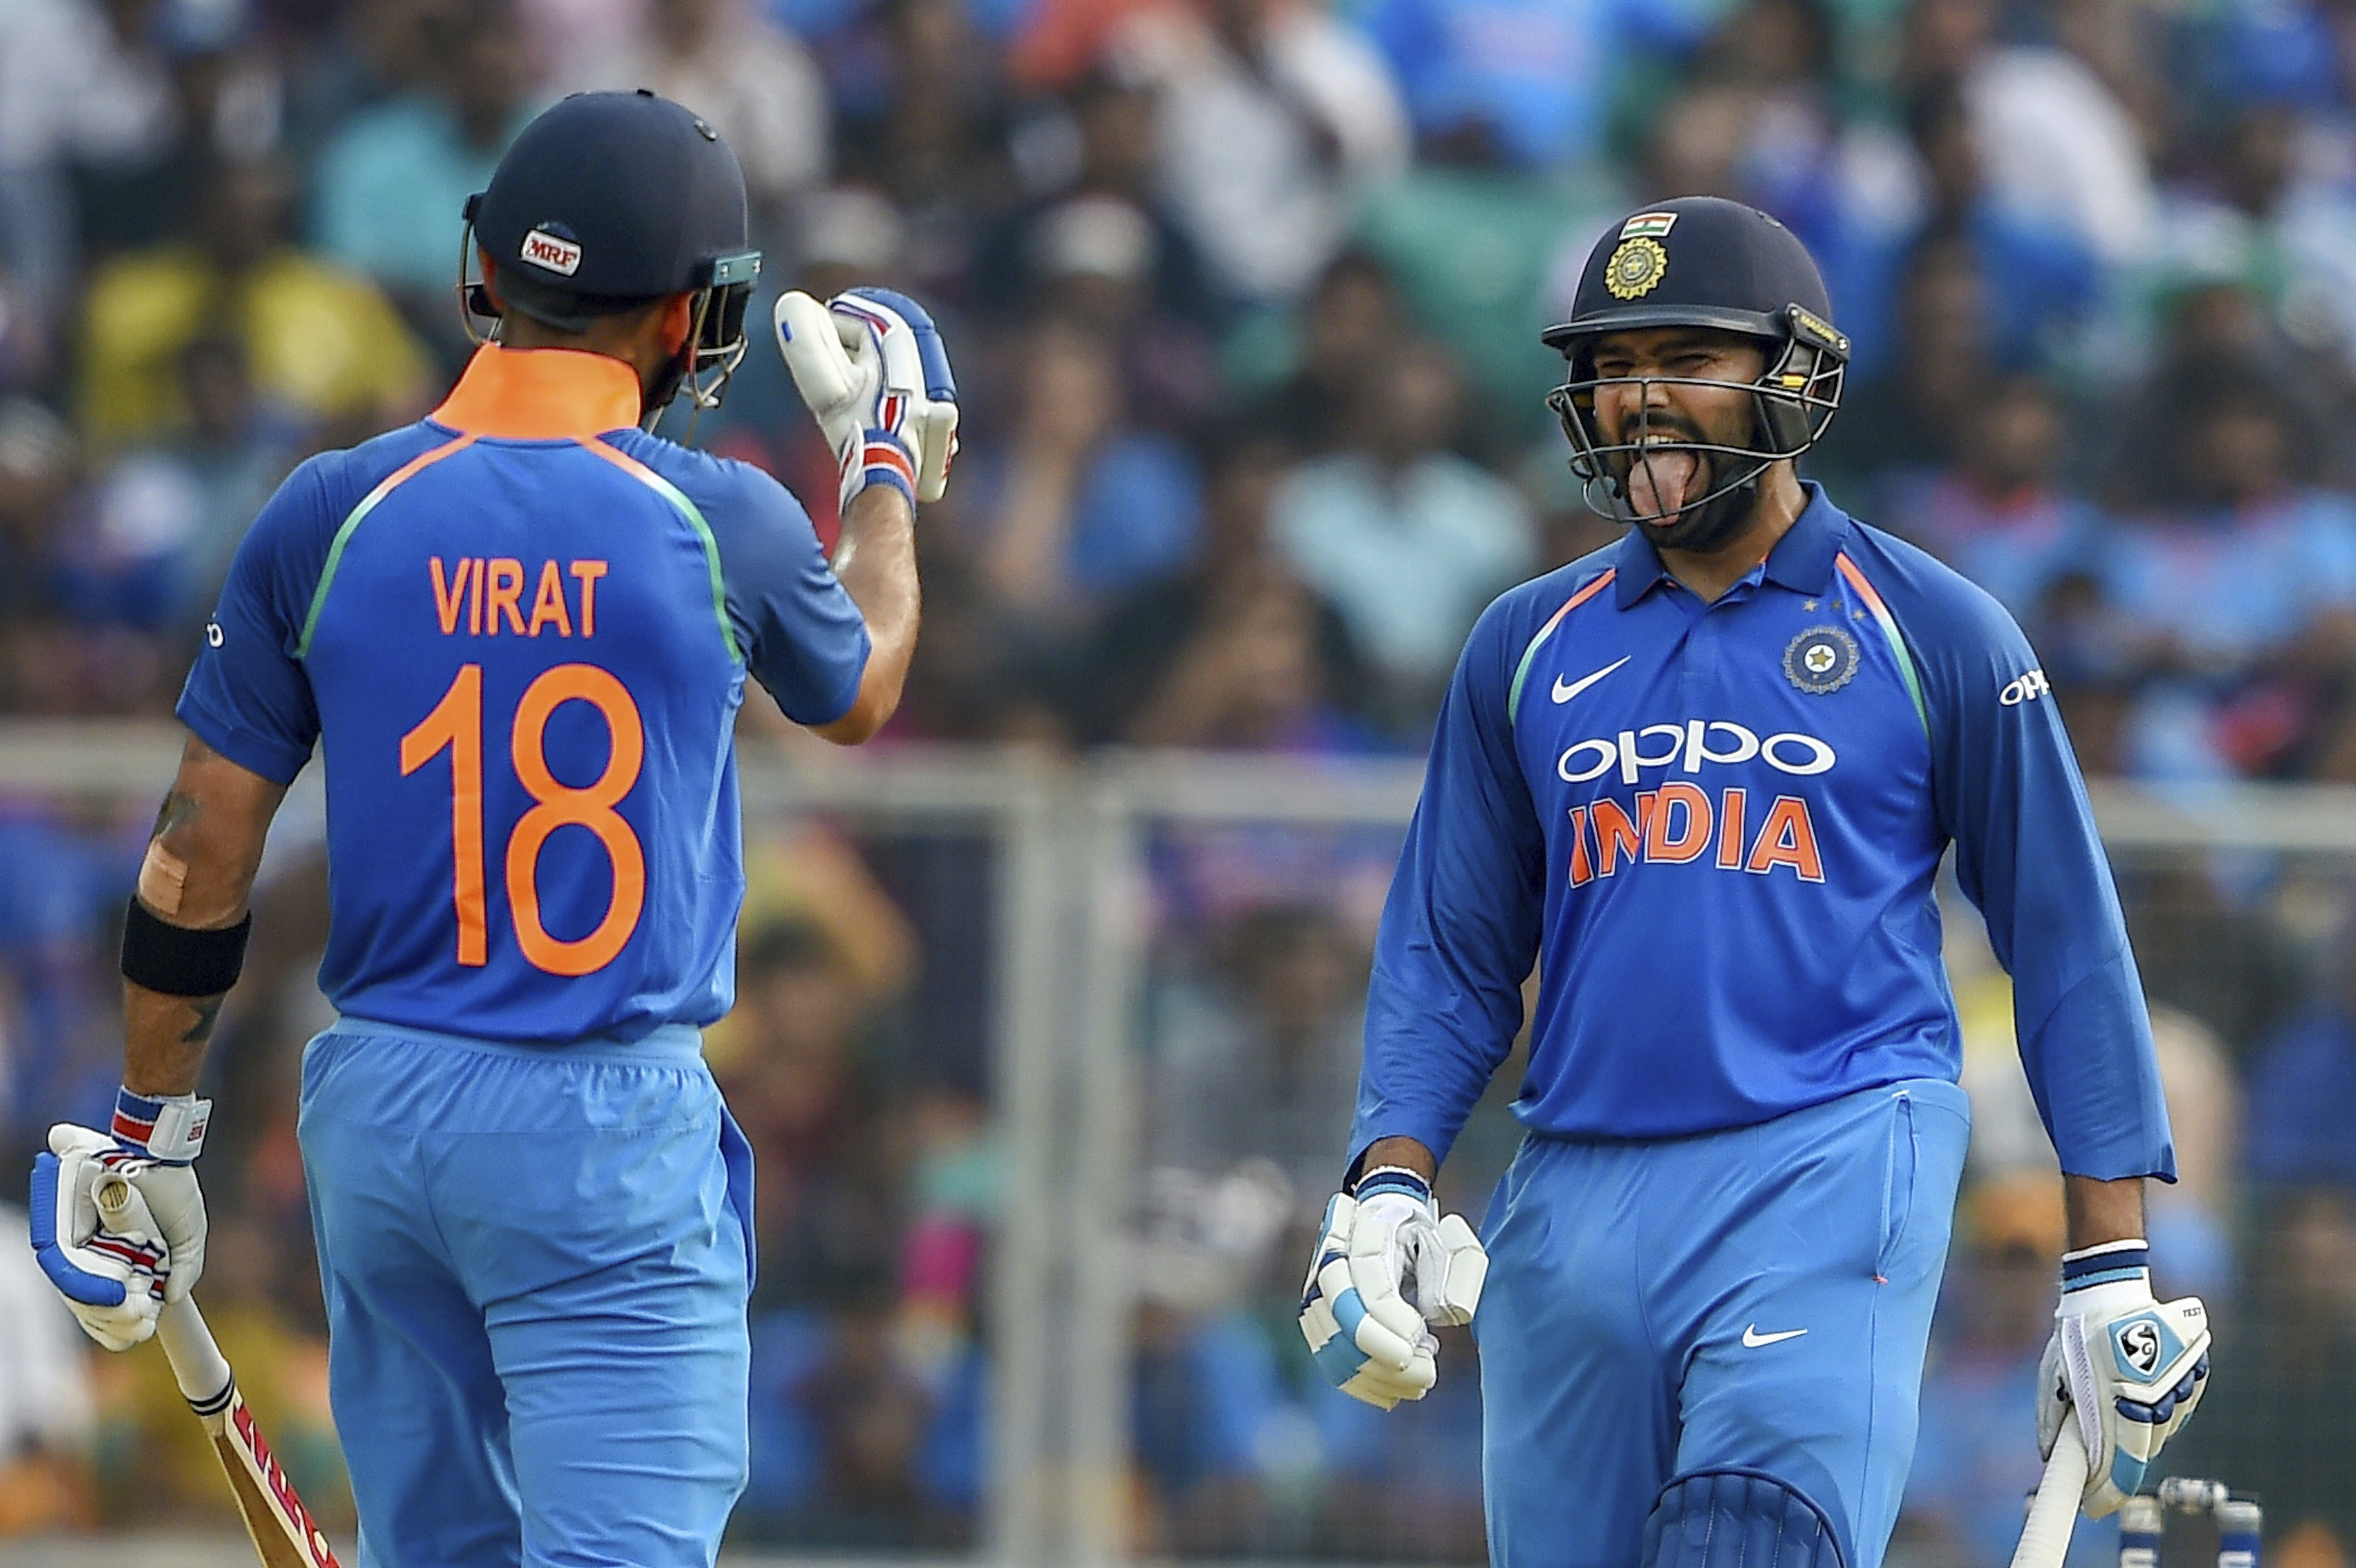 Indian batsman Rohit Sharma, right, gestures to captain Virat Kohli after hitting a boundary during the 5th and final ODI cricket match against West Indies, at Greenfield International Stadium in Thiruvananthapuram - PTI